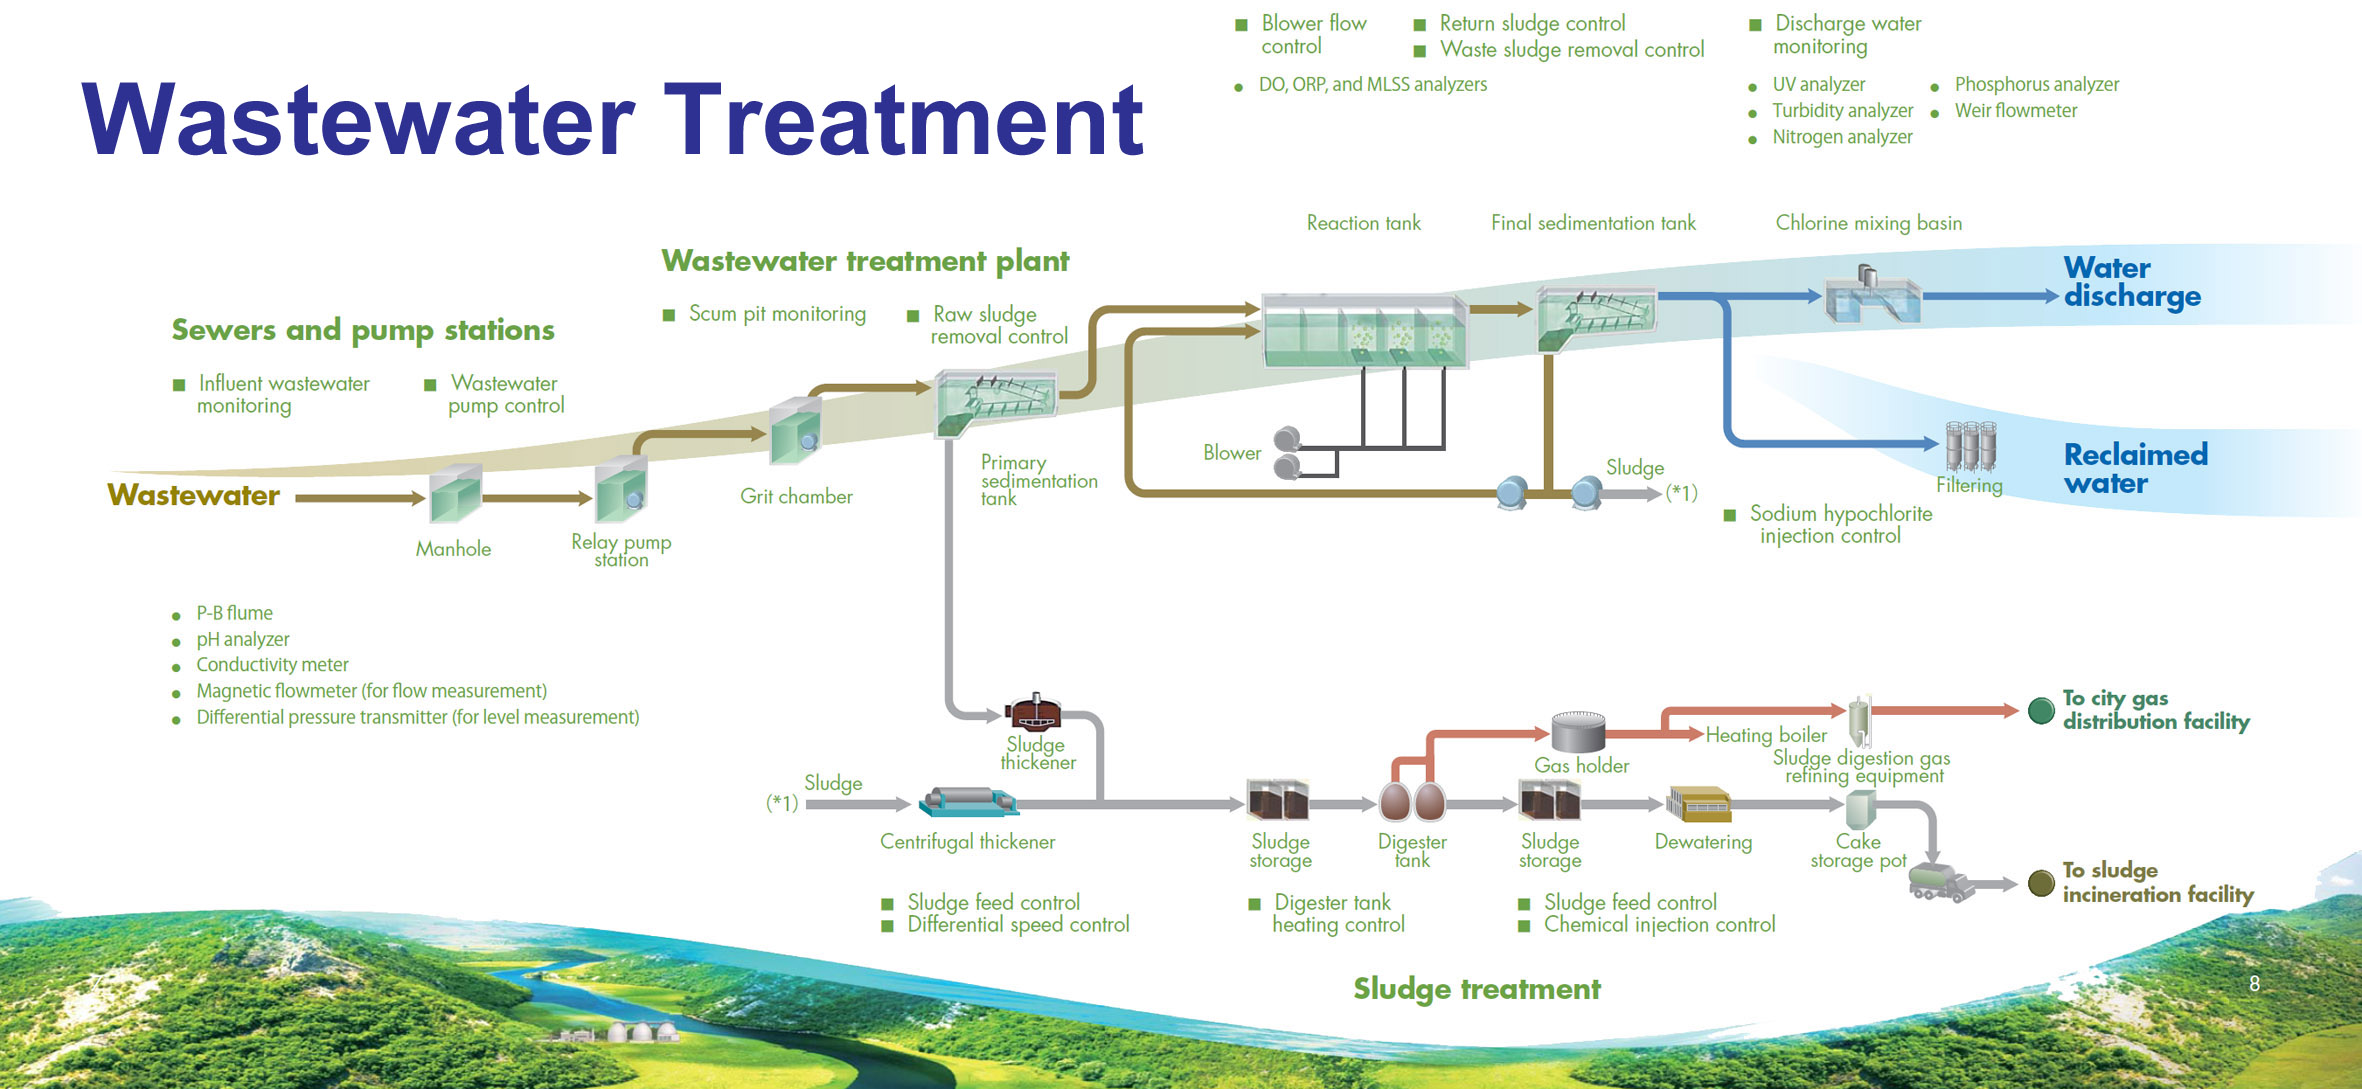 Wastewater Treatment Yokogawa Philippines